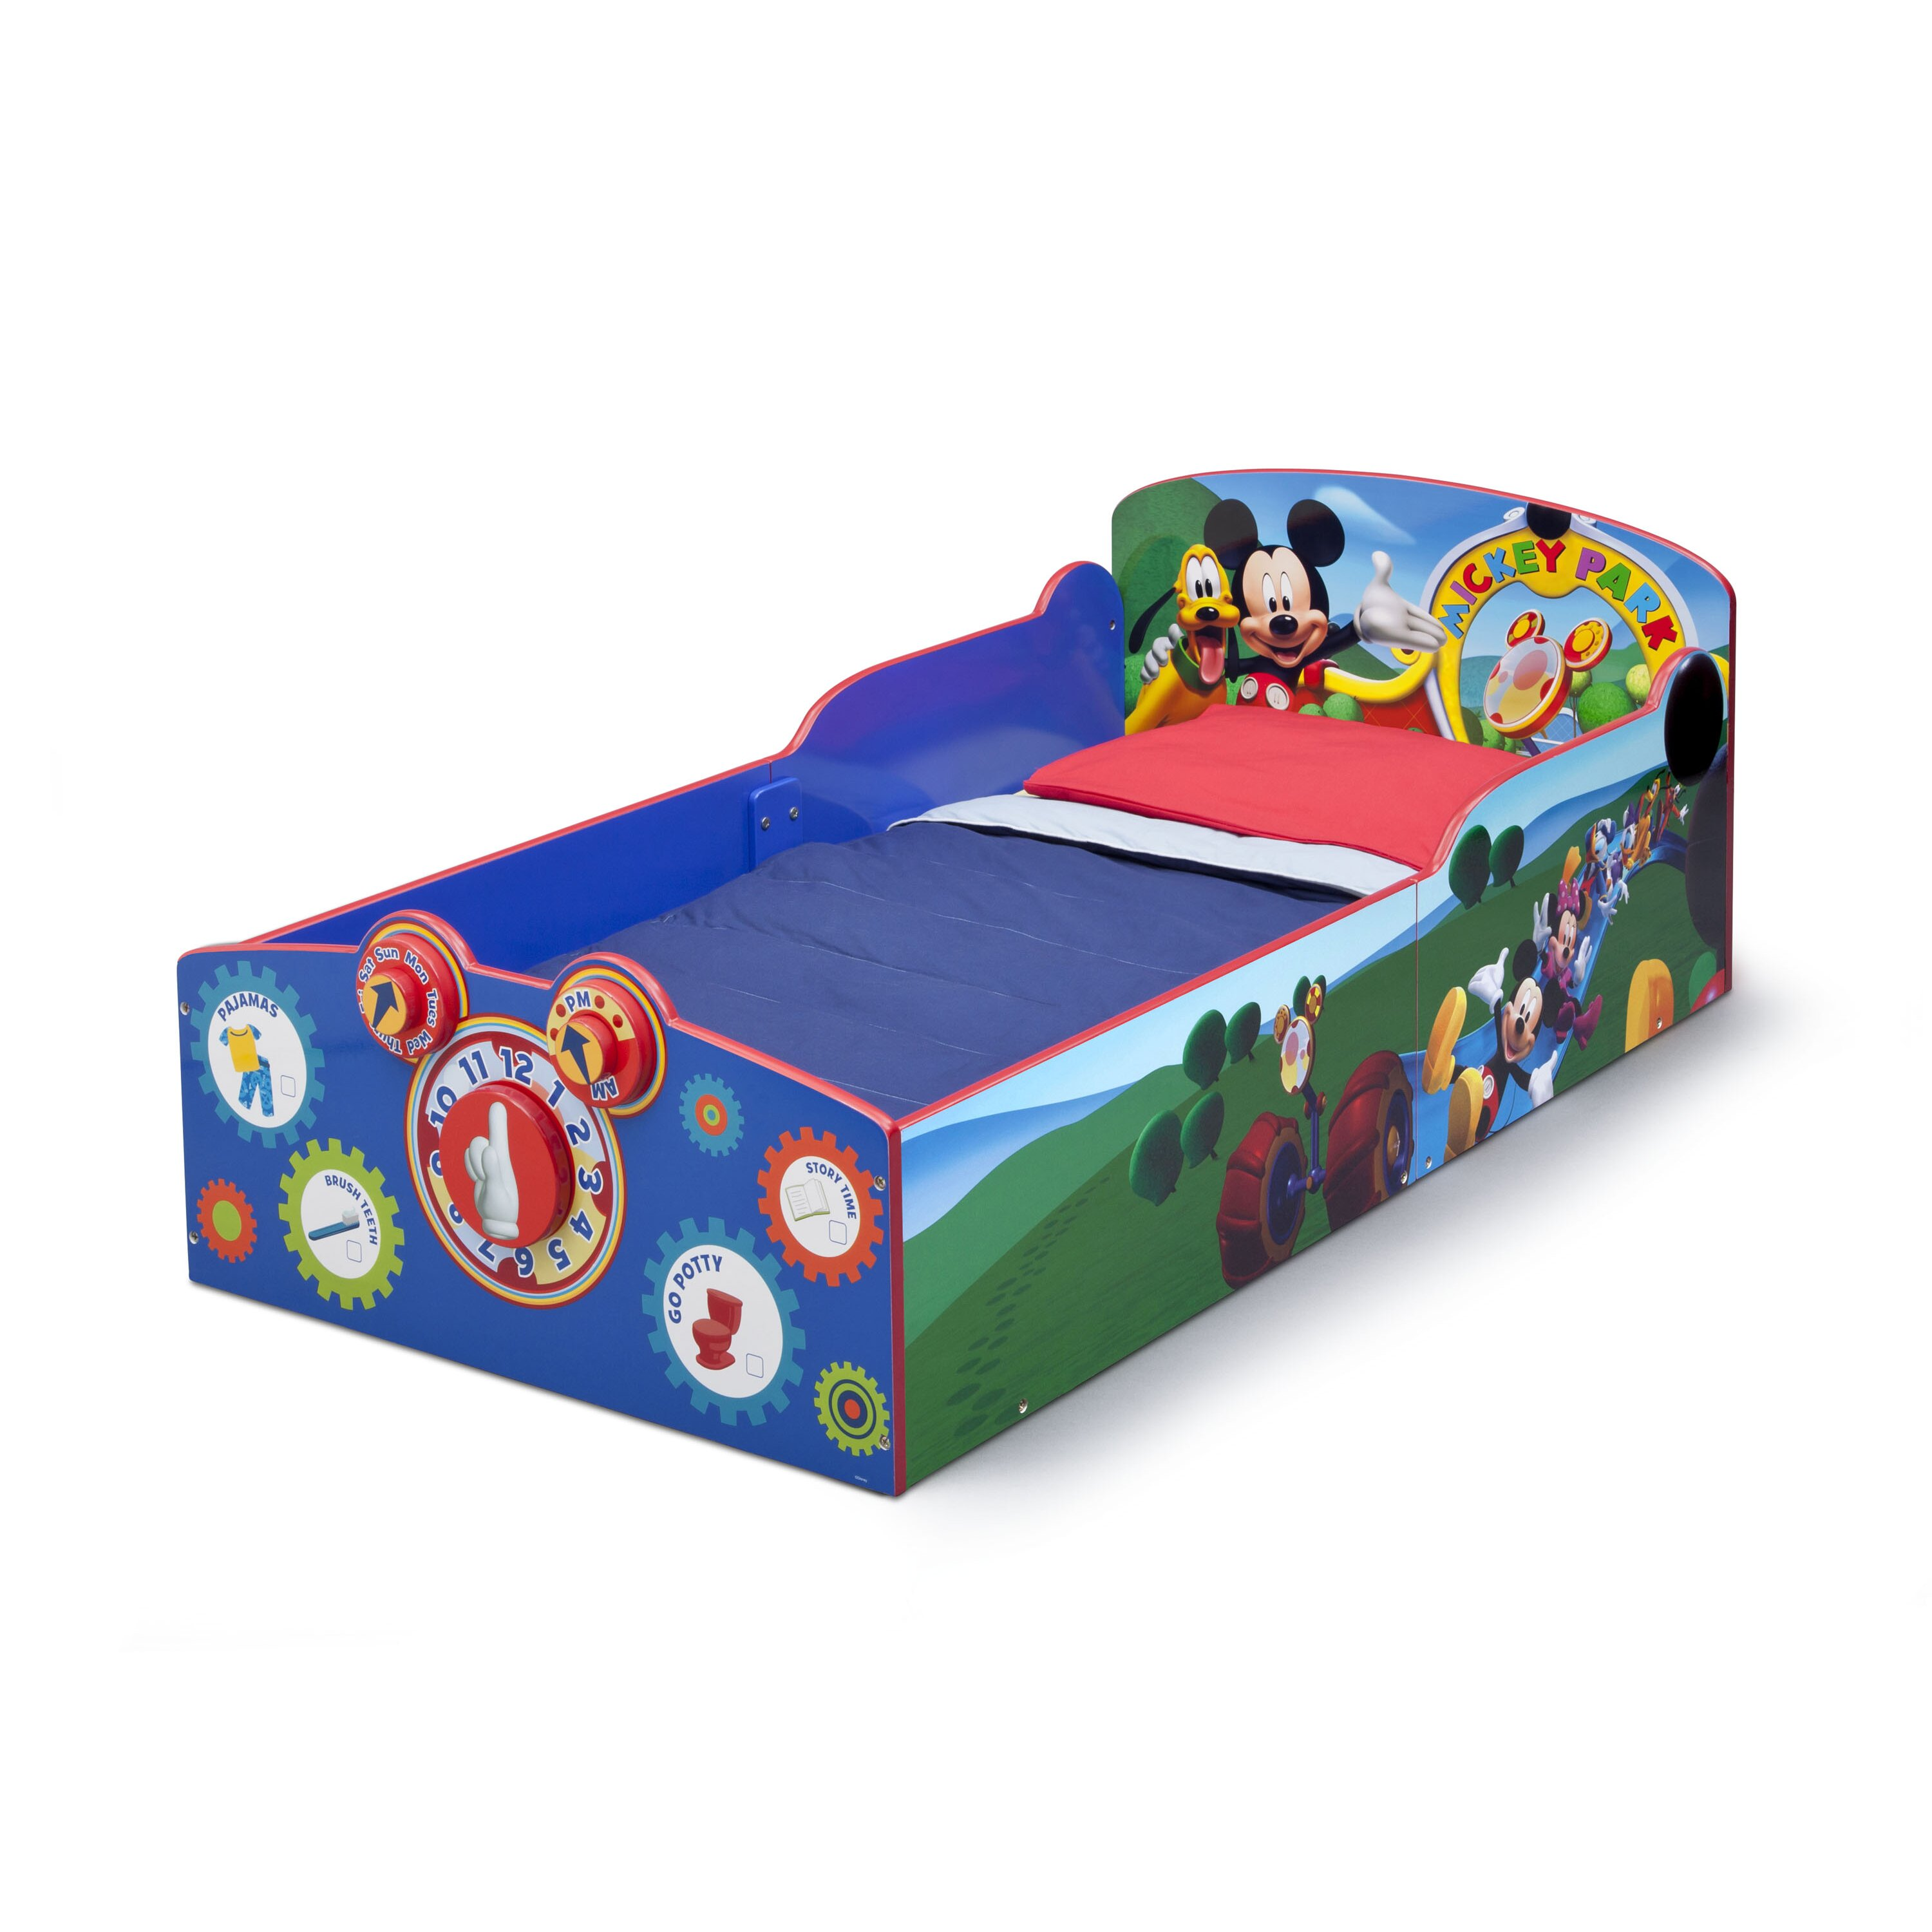 Delta Children Mickey Mouse Toddler Bed amp Reviews Wayfair : Delta Children Mickey Mouse Toddler Bed from www.wayfair.com size 3000 x 3000 jpeg 706kB